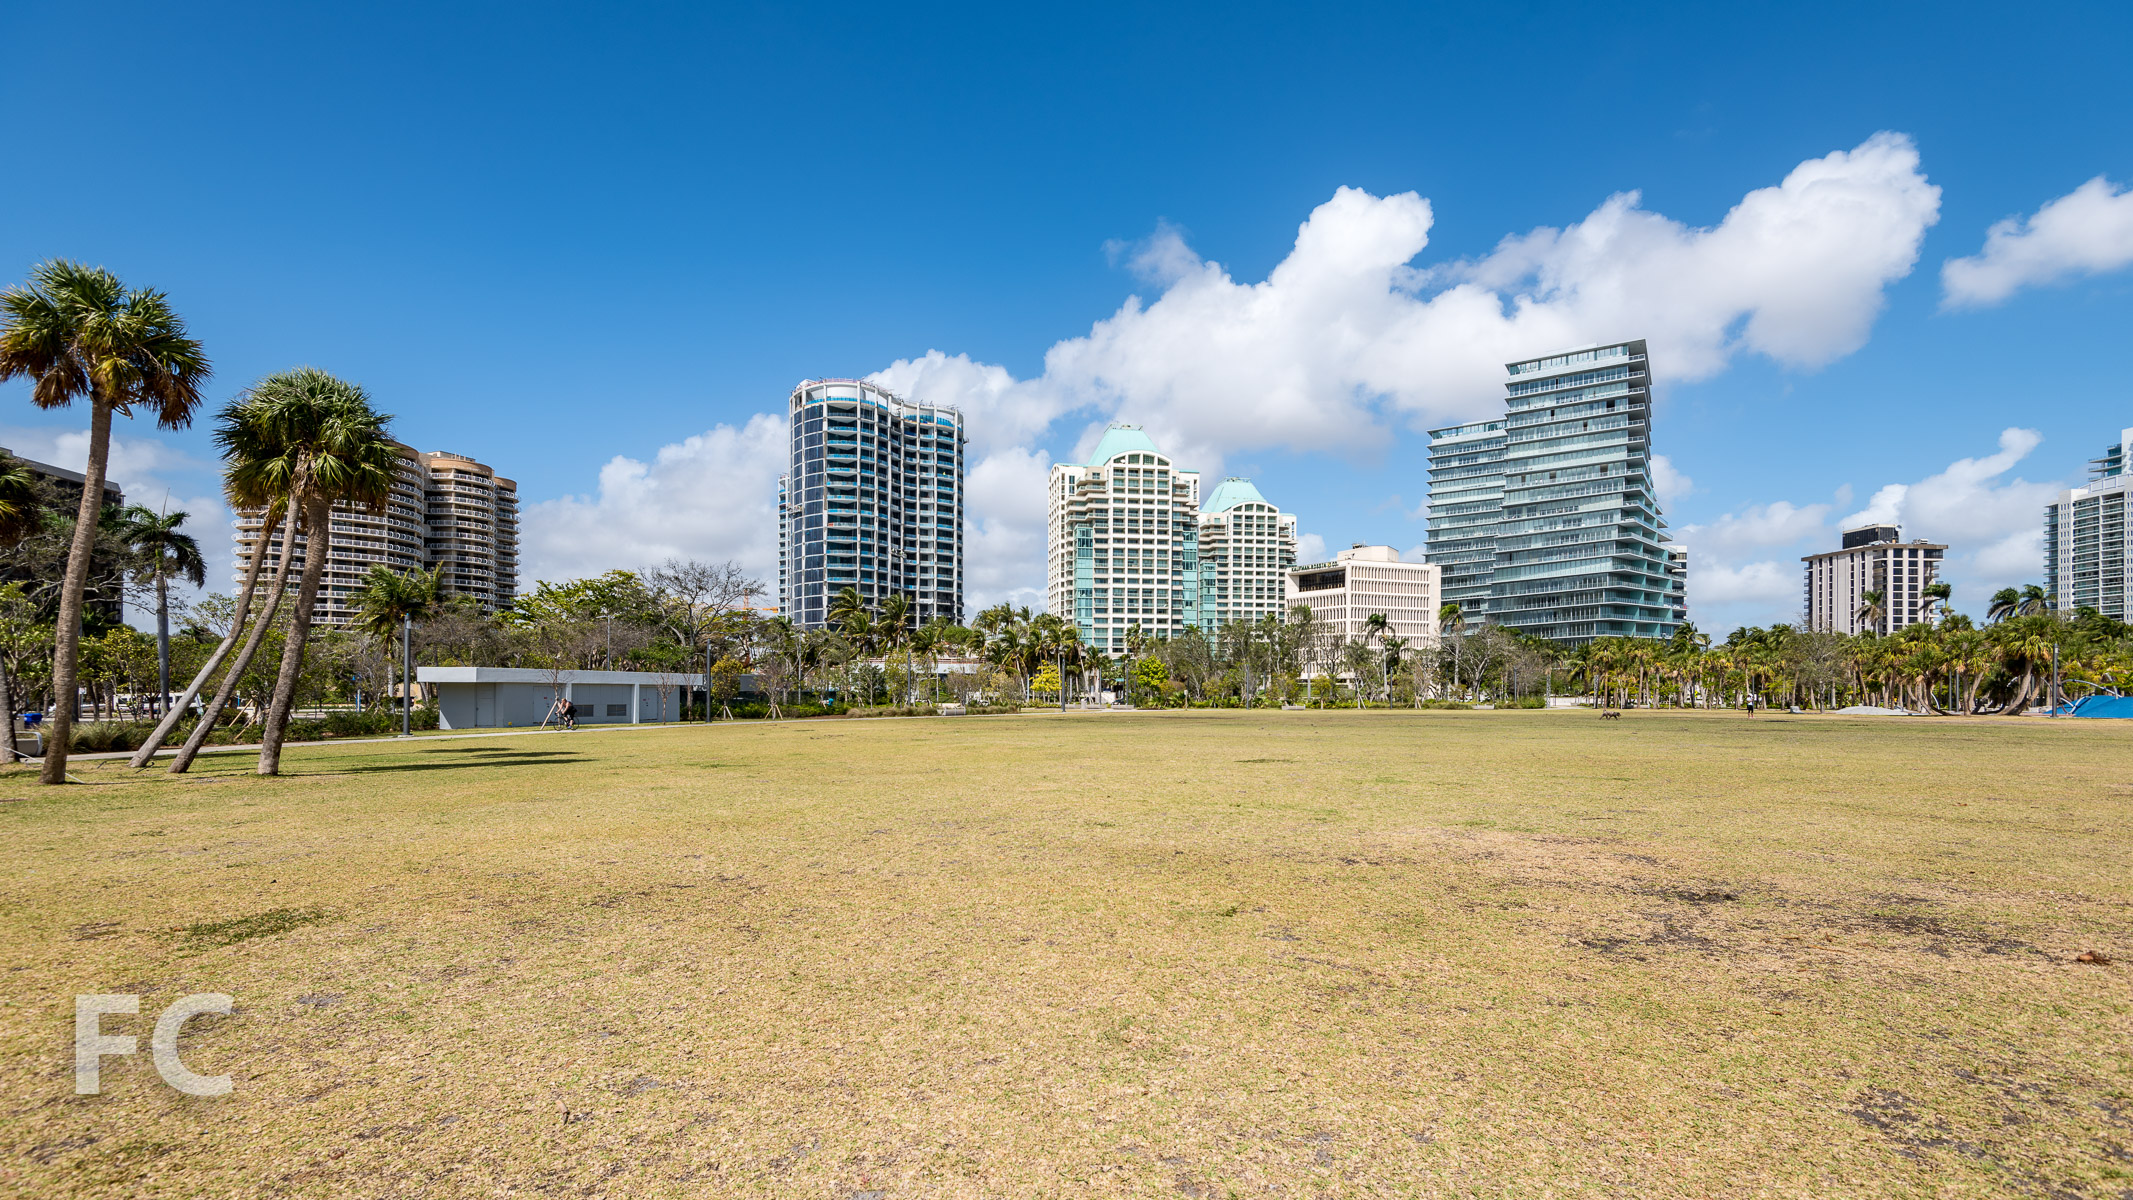 Park Grove (center) and the Grove at Grand Bay (right) from Regatta Park.